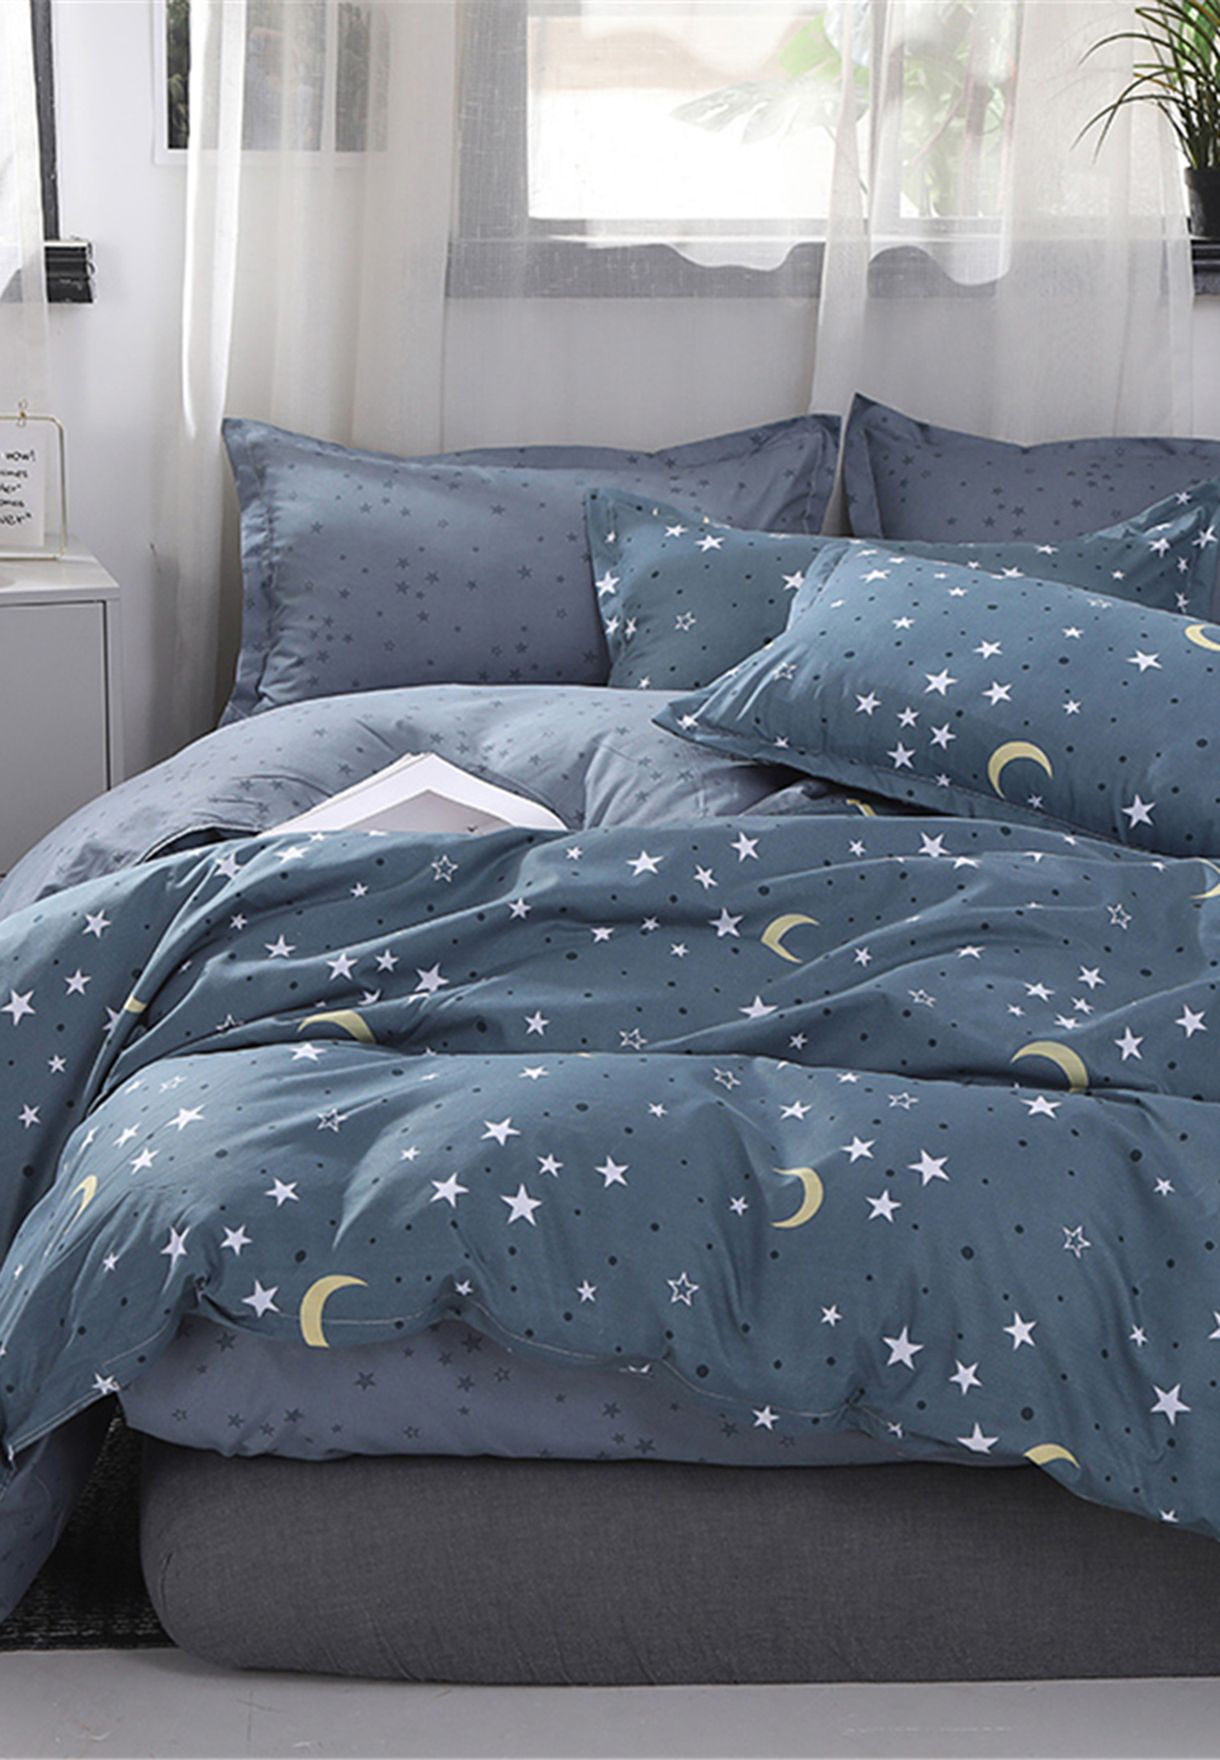 Stars & Moon Print Bedding Set - Double 200x200cm